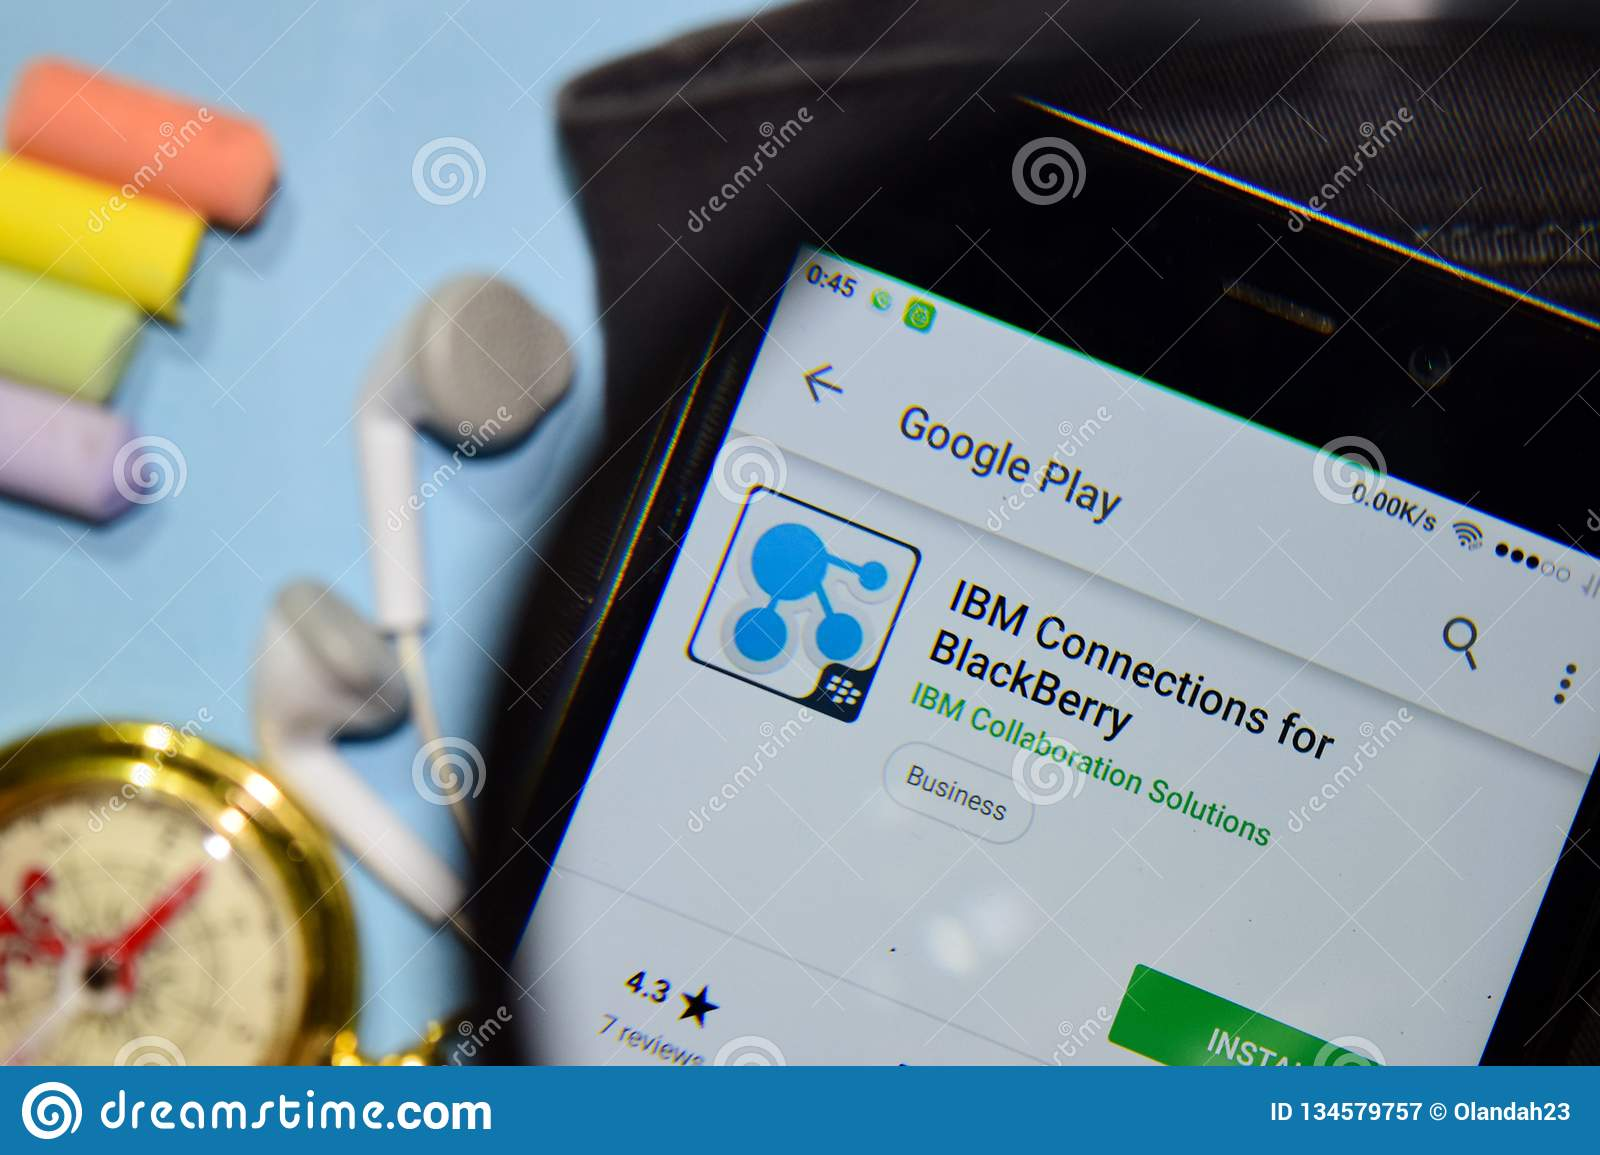 IBM Connections For BlackBerry Dev App With Magnifying On ... on smartphone map app, best iphone map app, nokia map app, gps map app,